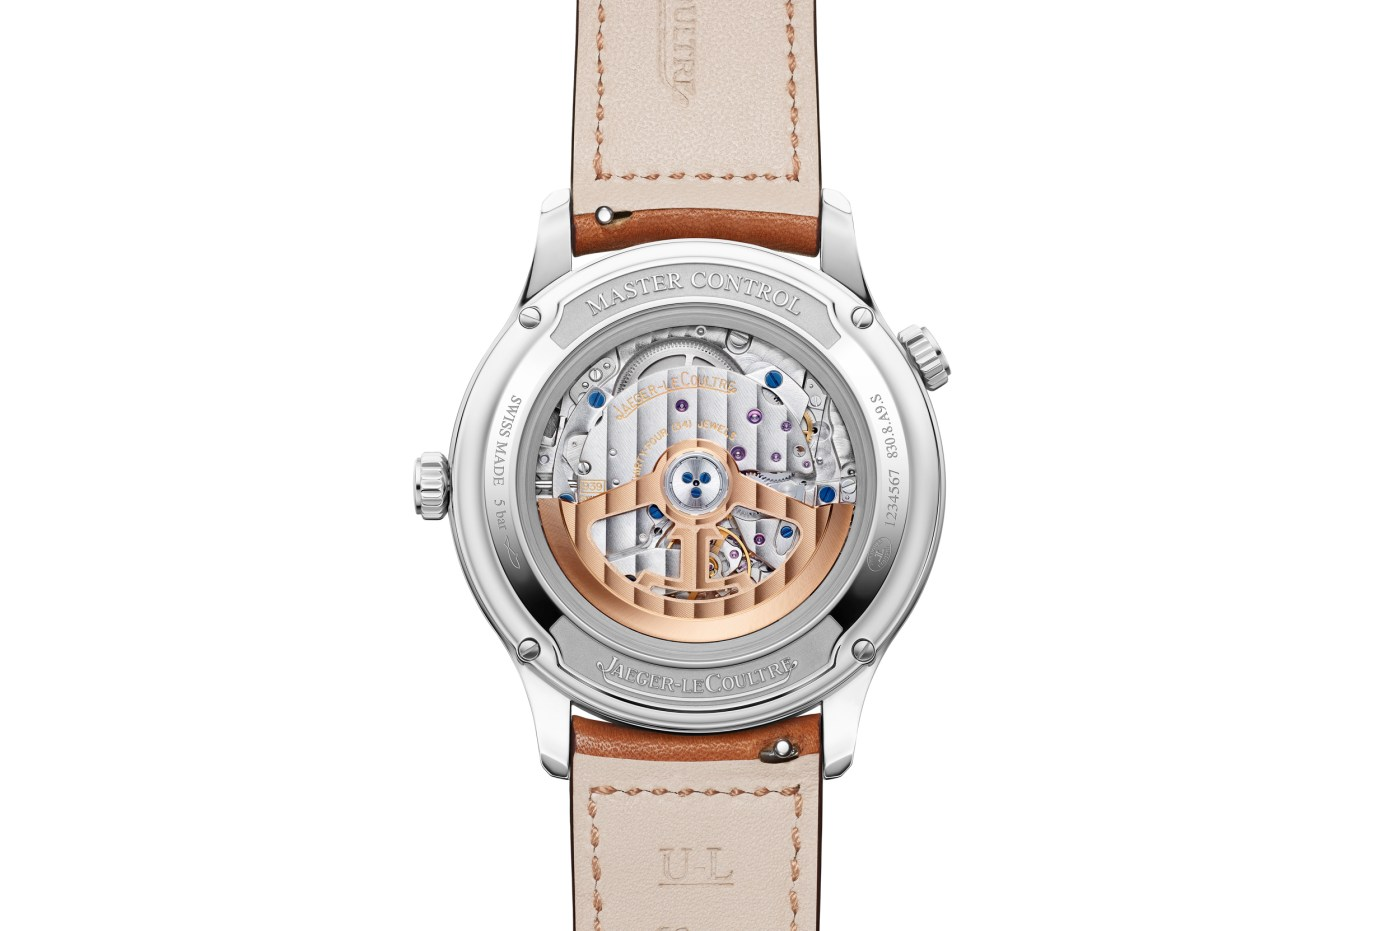 Jaeger-LeCoultre Master Control Geographic caseback 2020